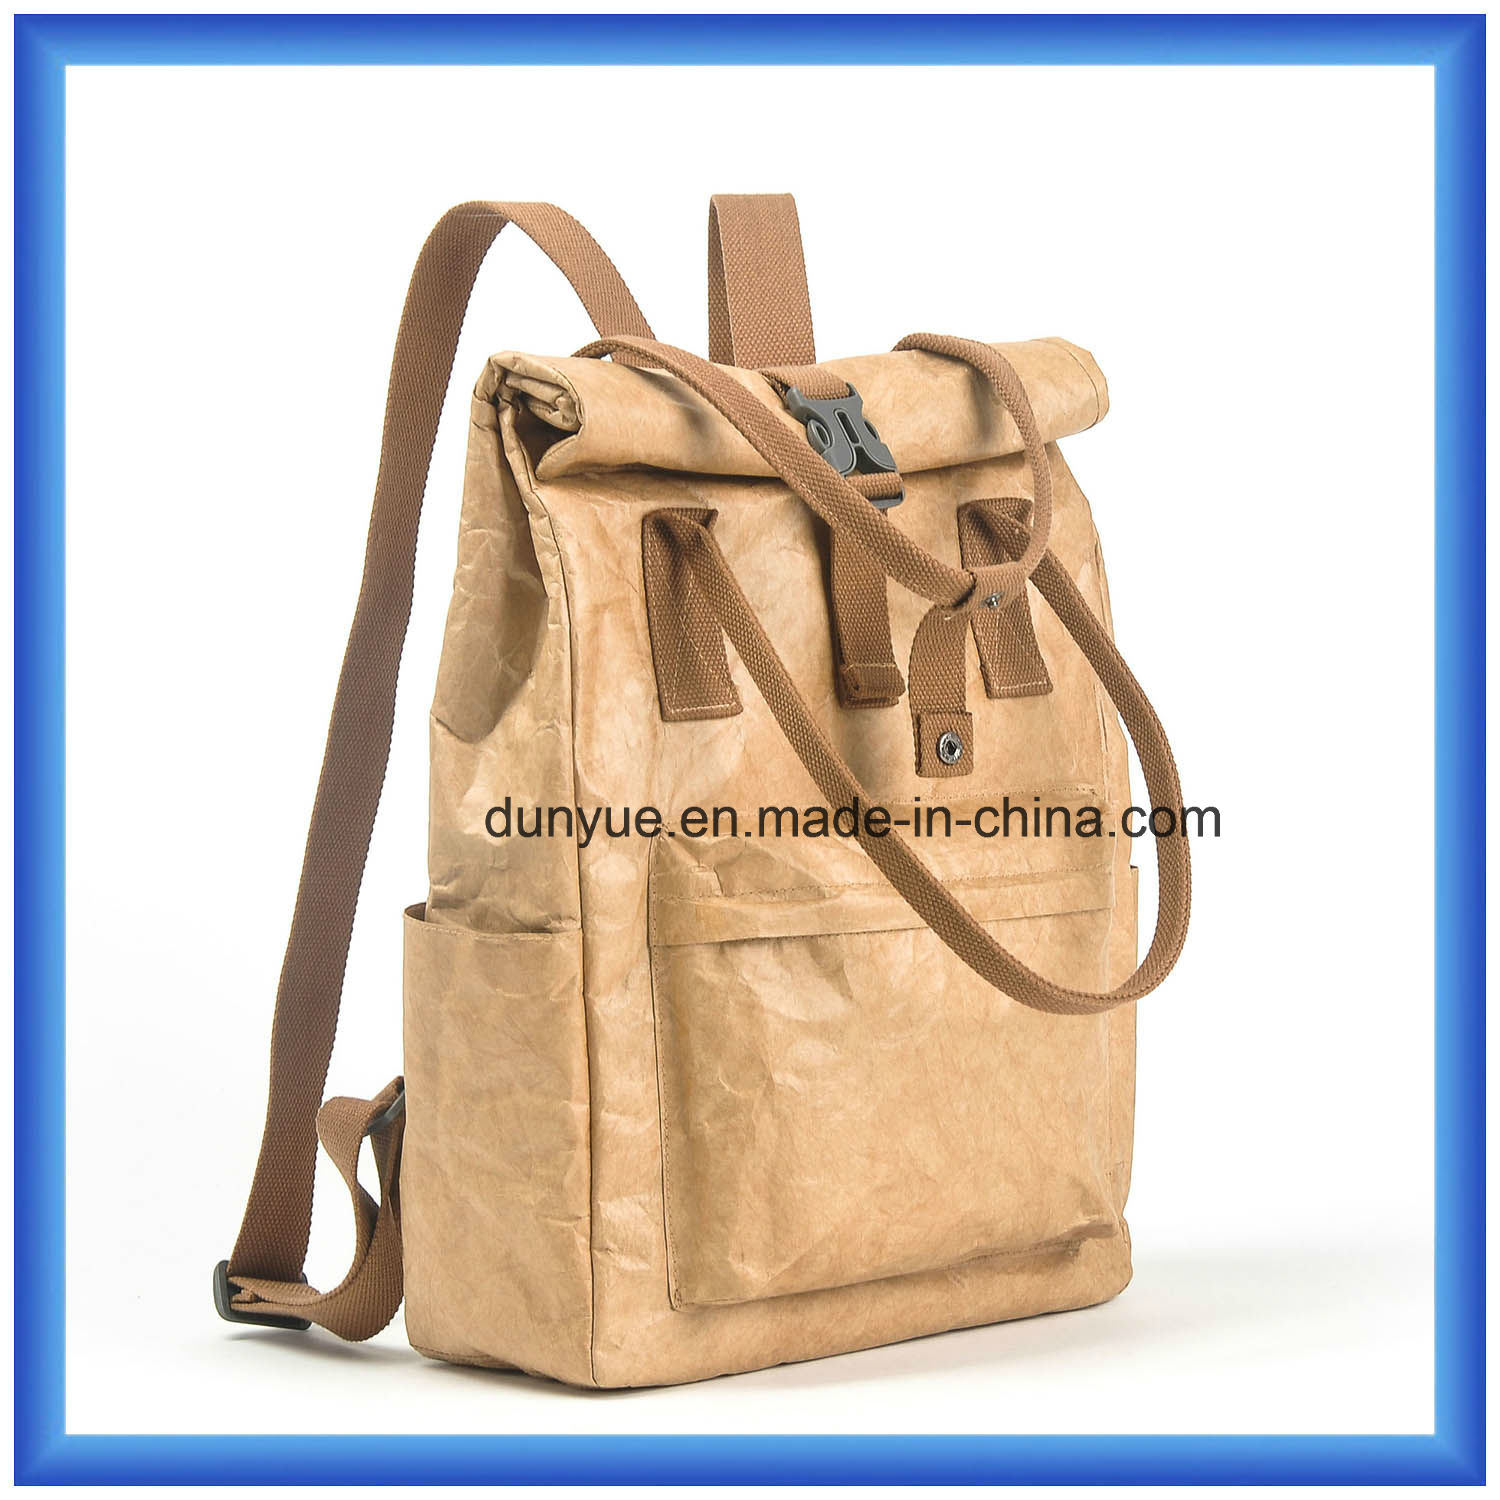 4d42143a85e4 China Young Design Customized DuPont Paper Casual School Backpack ...